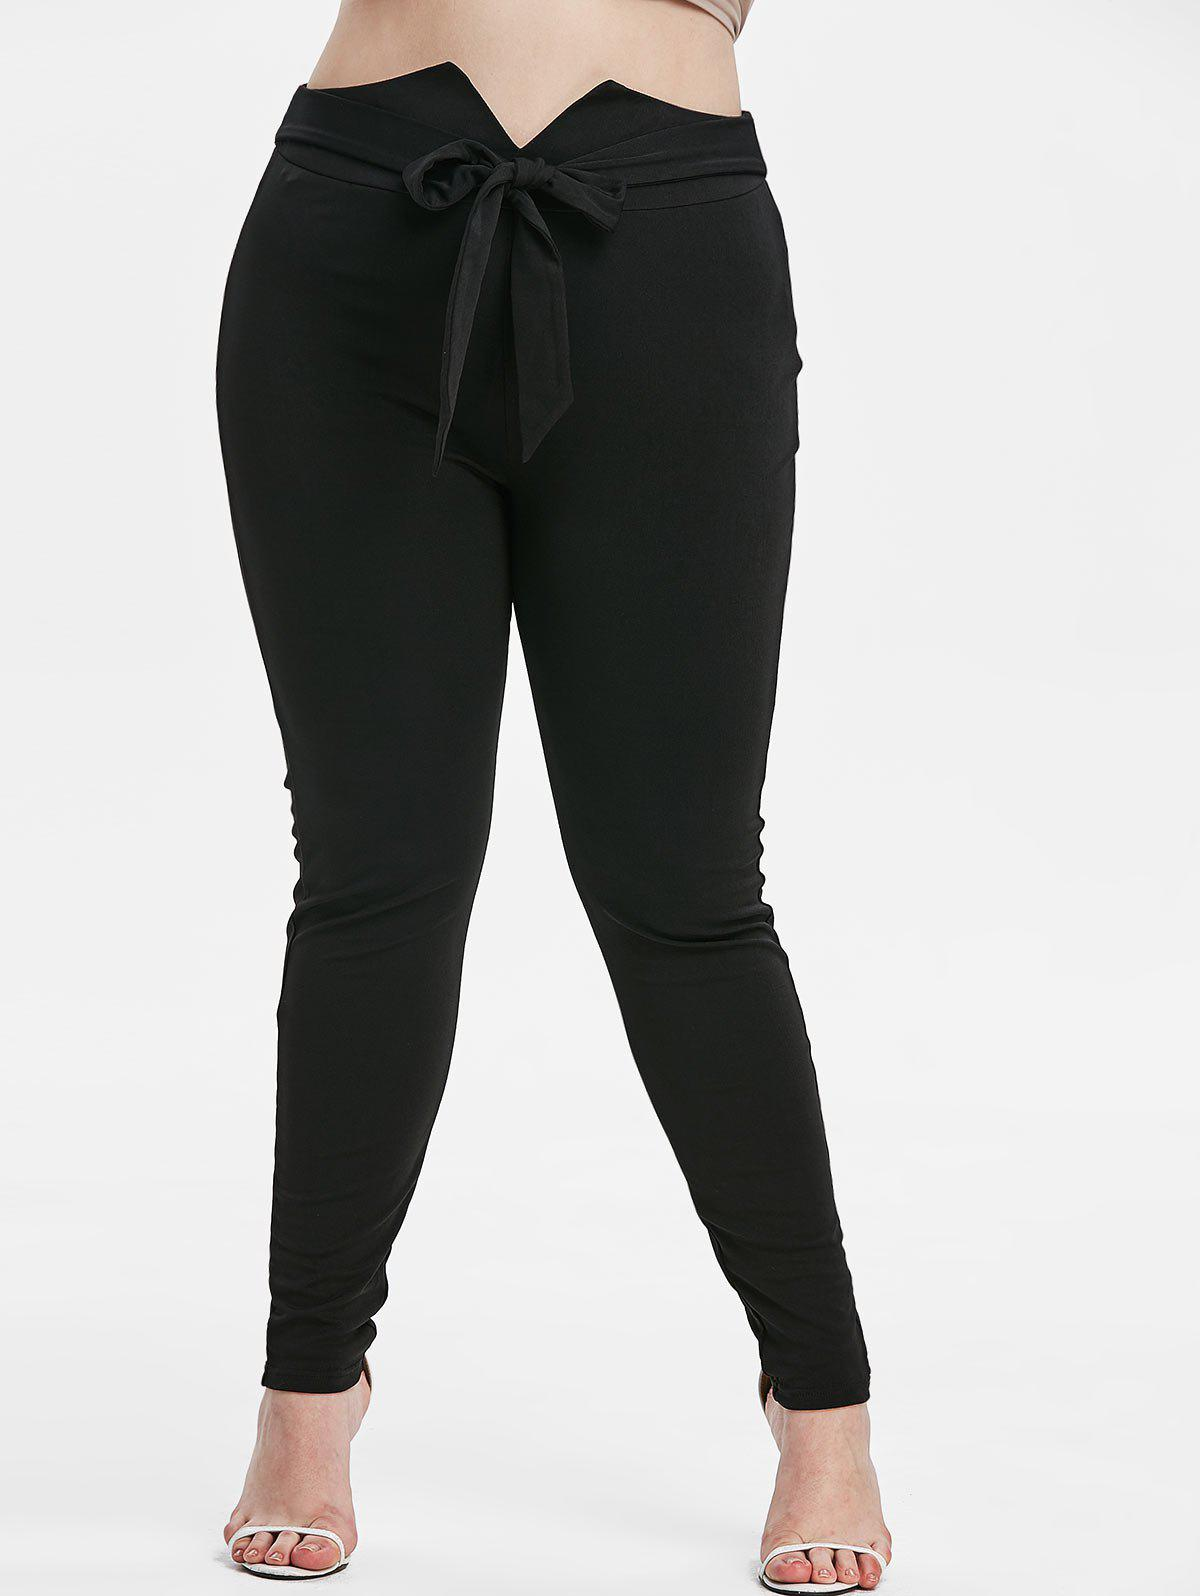 Plus Size Knot Front High Waisted Pep Leg Pants - BLACK 5X